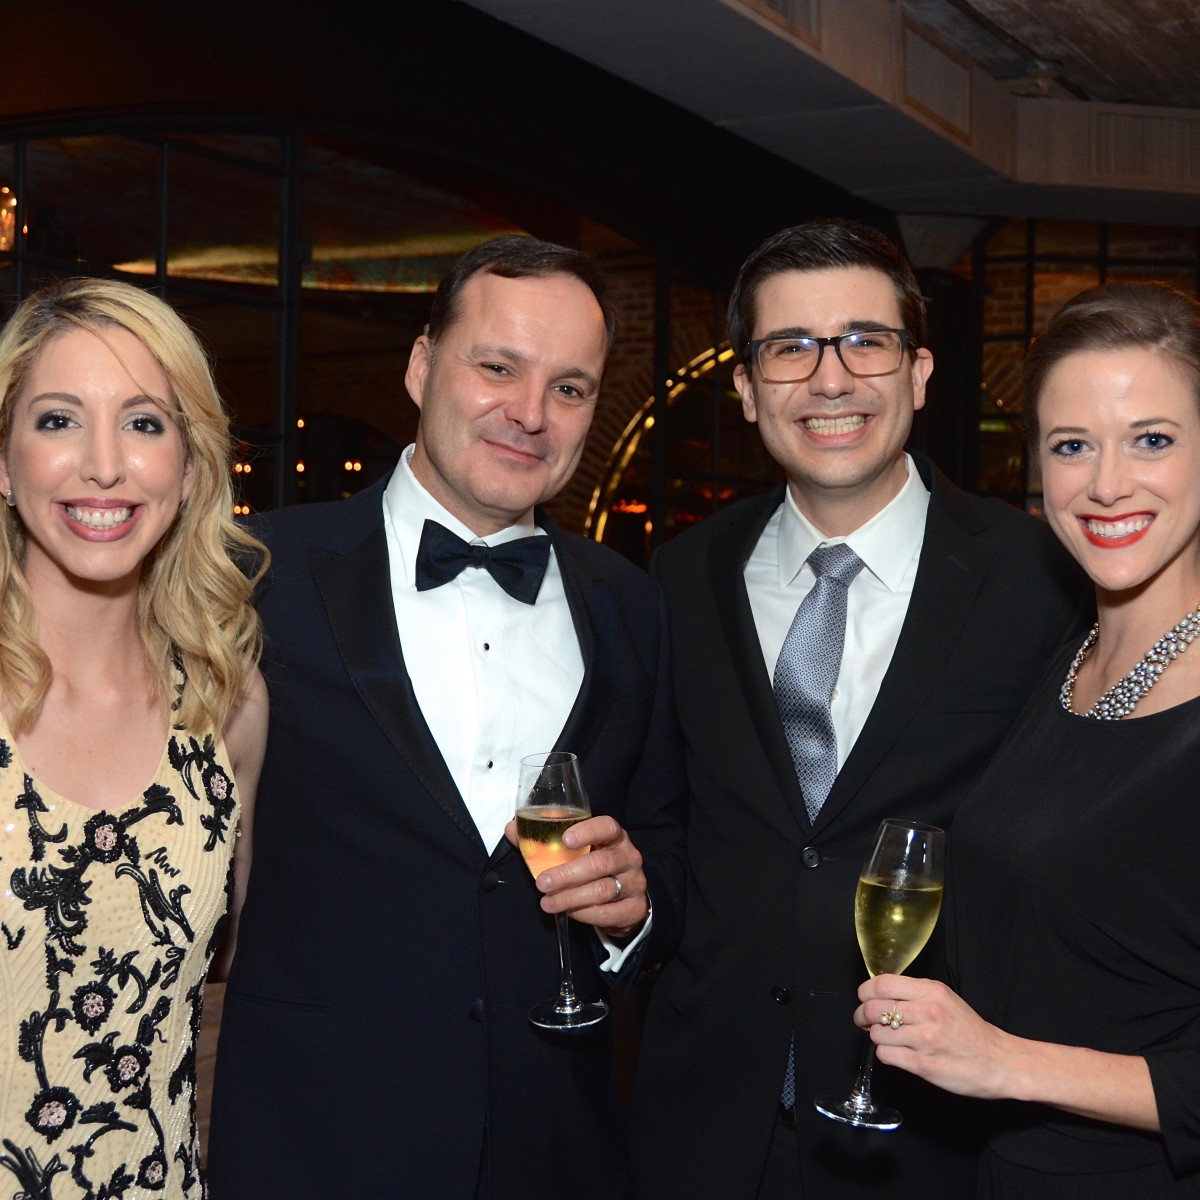 Ingrid Hunter; Luc Messier; Nico Roussel; Teresa Procter at 2017 Da Camera Gala